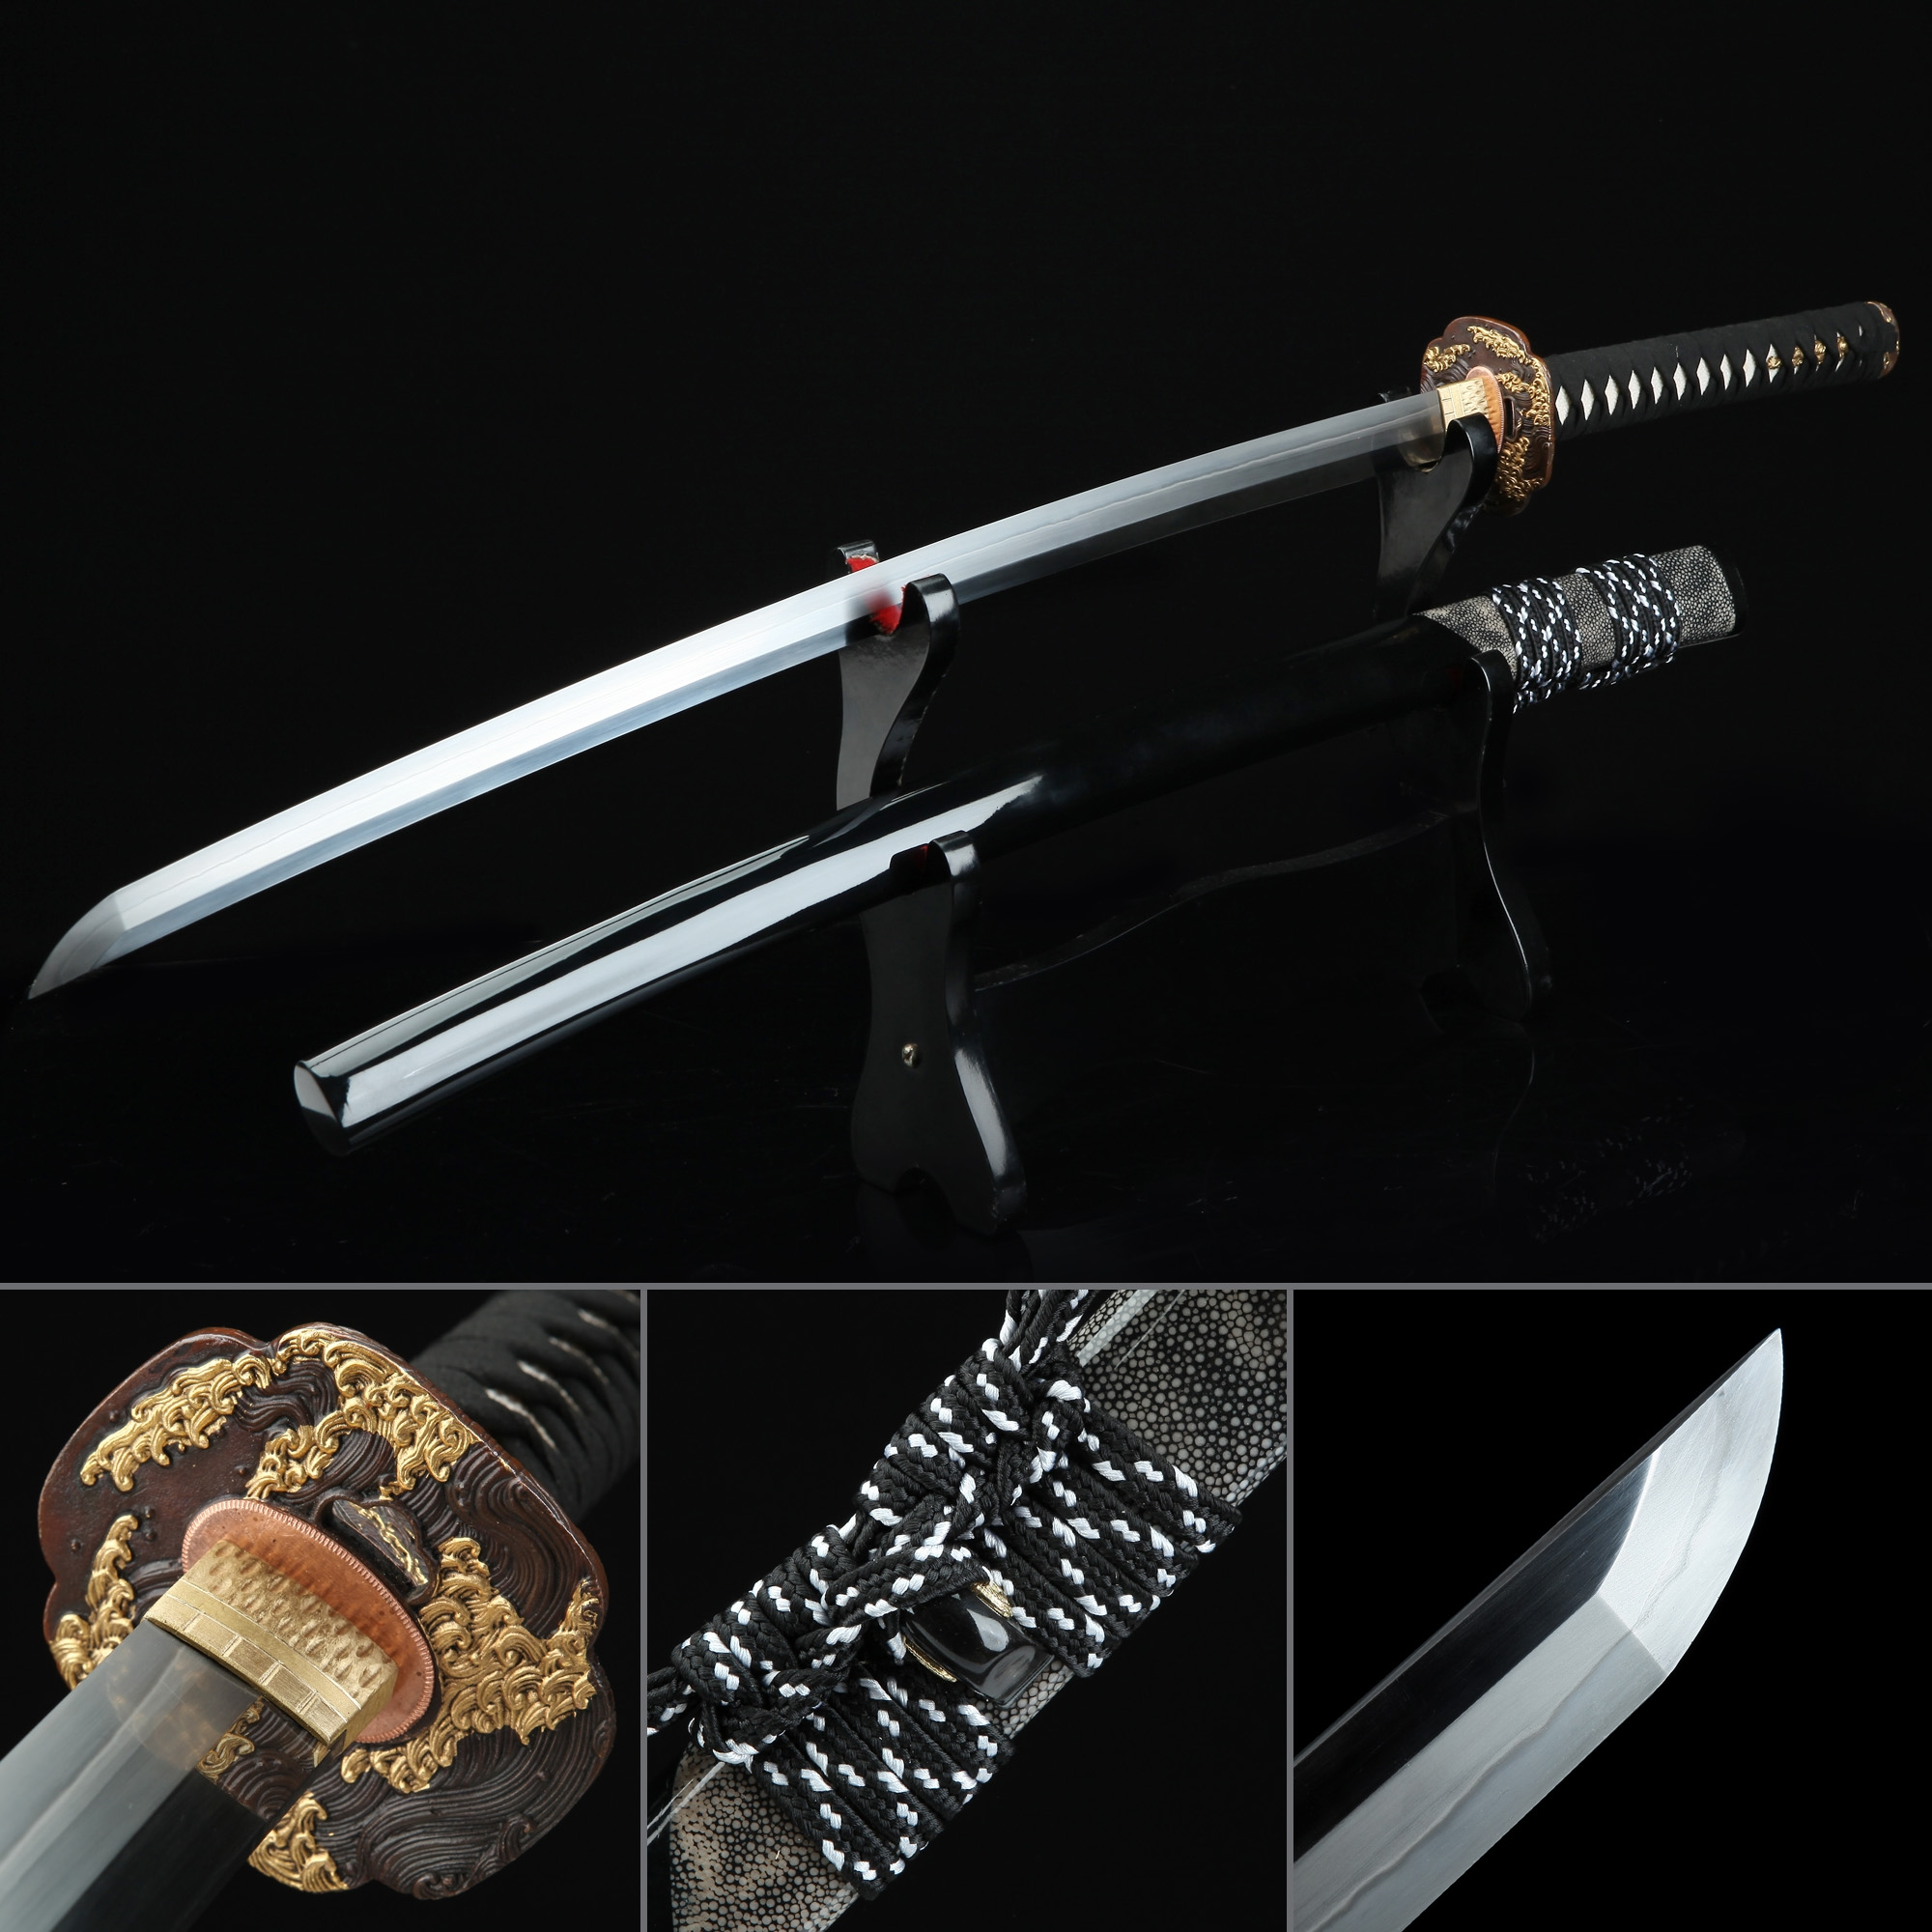 Battle Ready Sword, Authentic Japanese Katana T10 Carbon Steel Hand Forge Real Hamon Tactical Swords